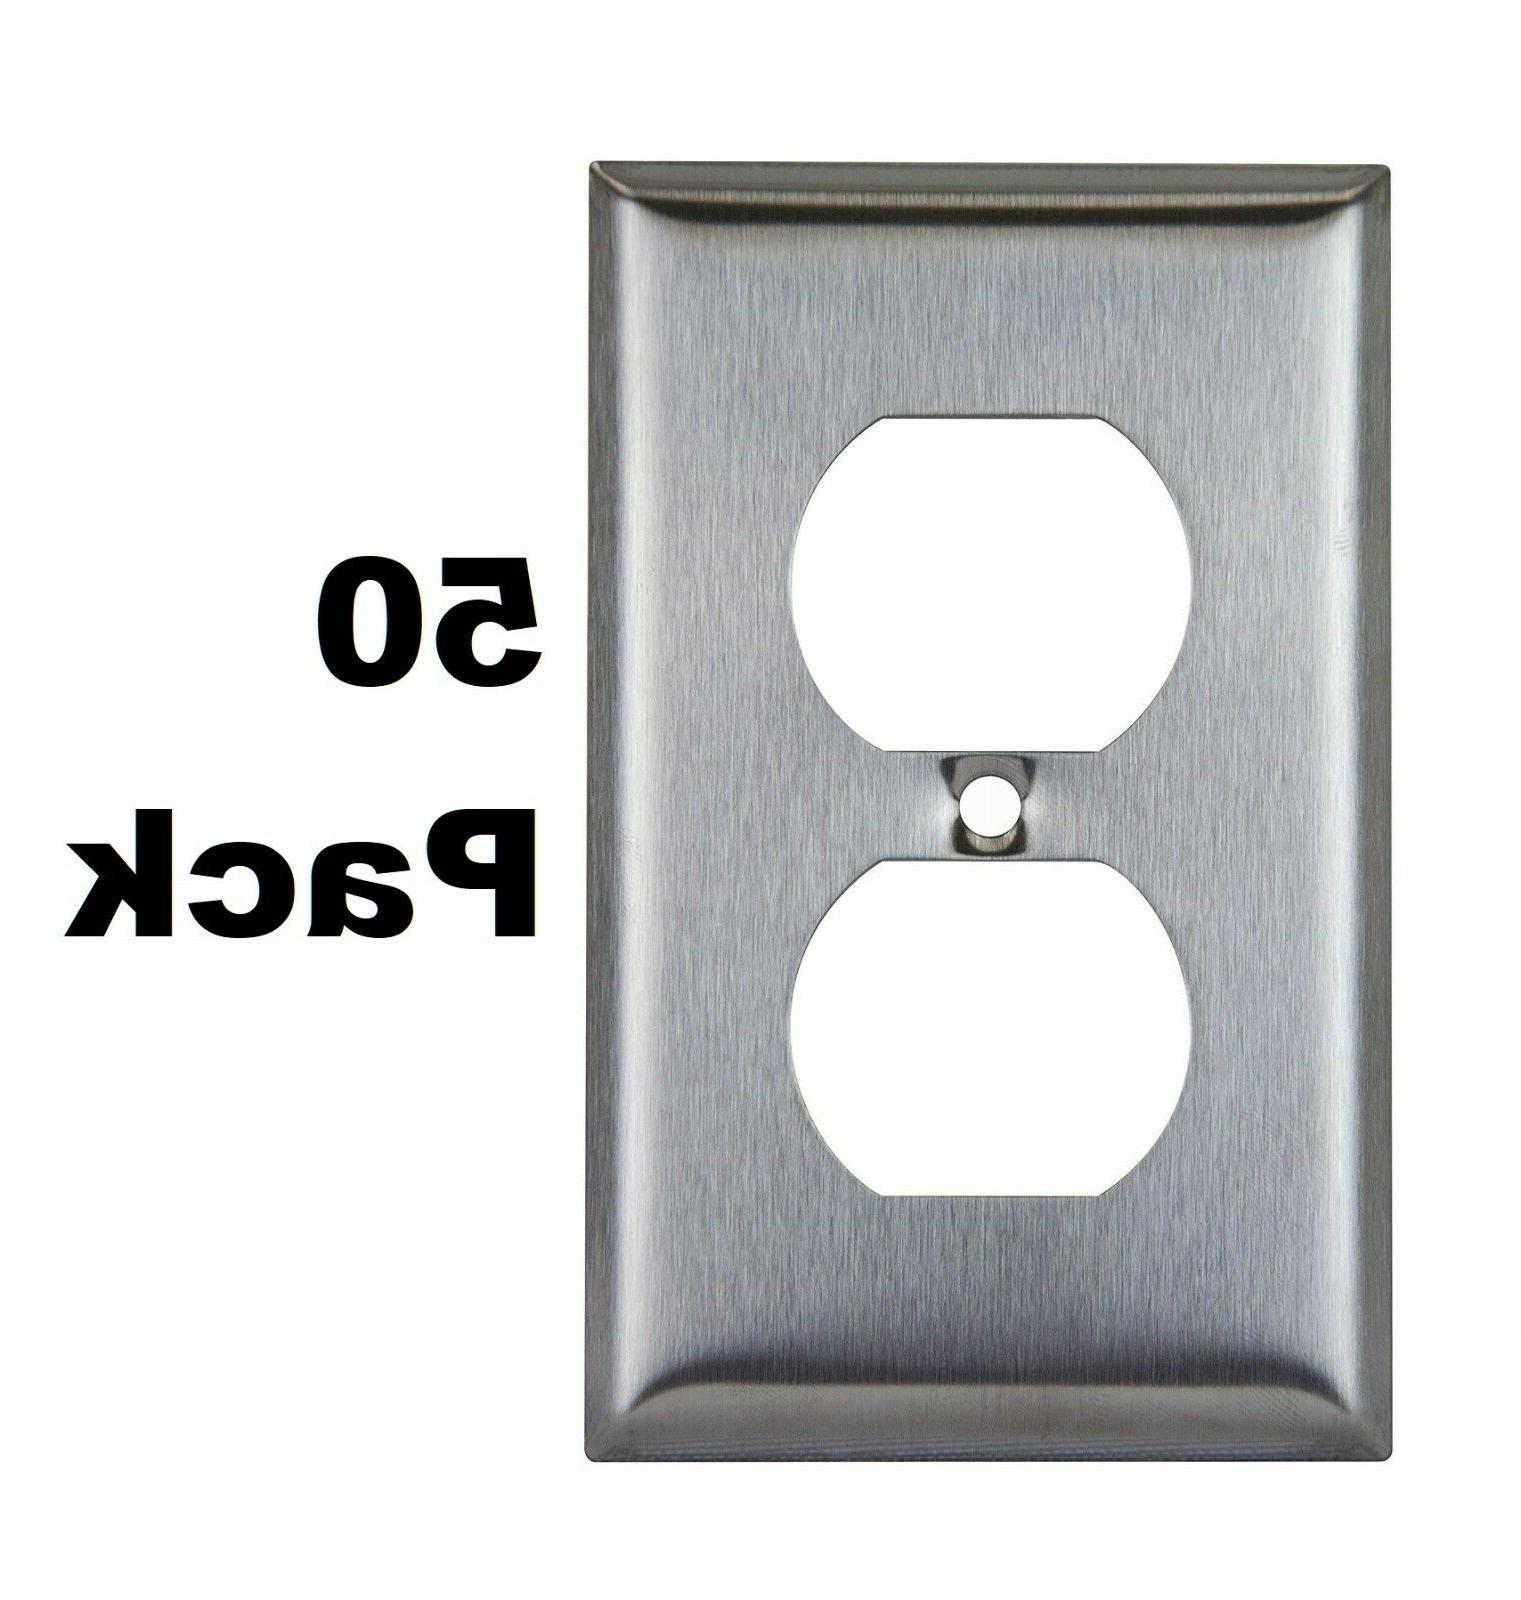 stainless steel outlet cover 1 gang duplex